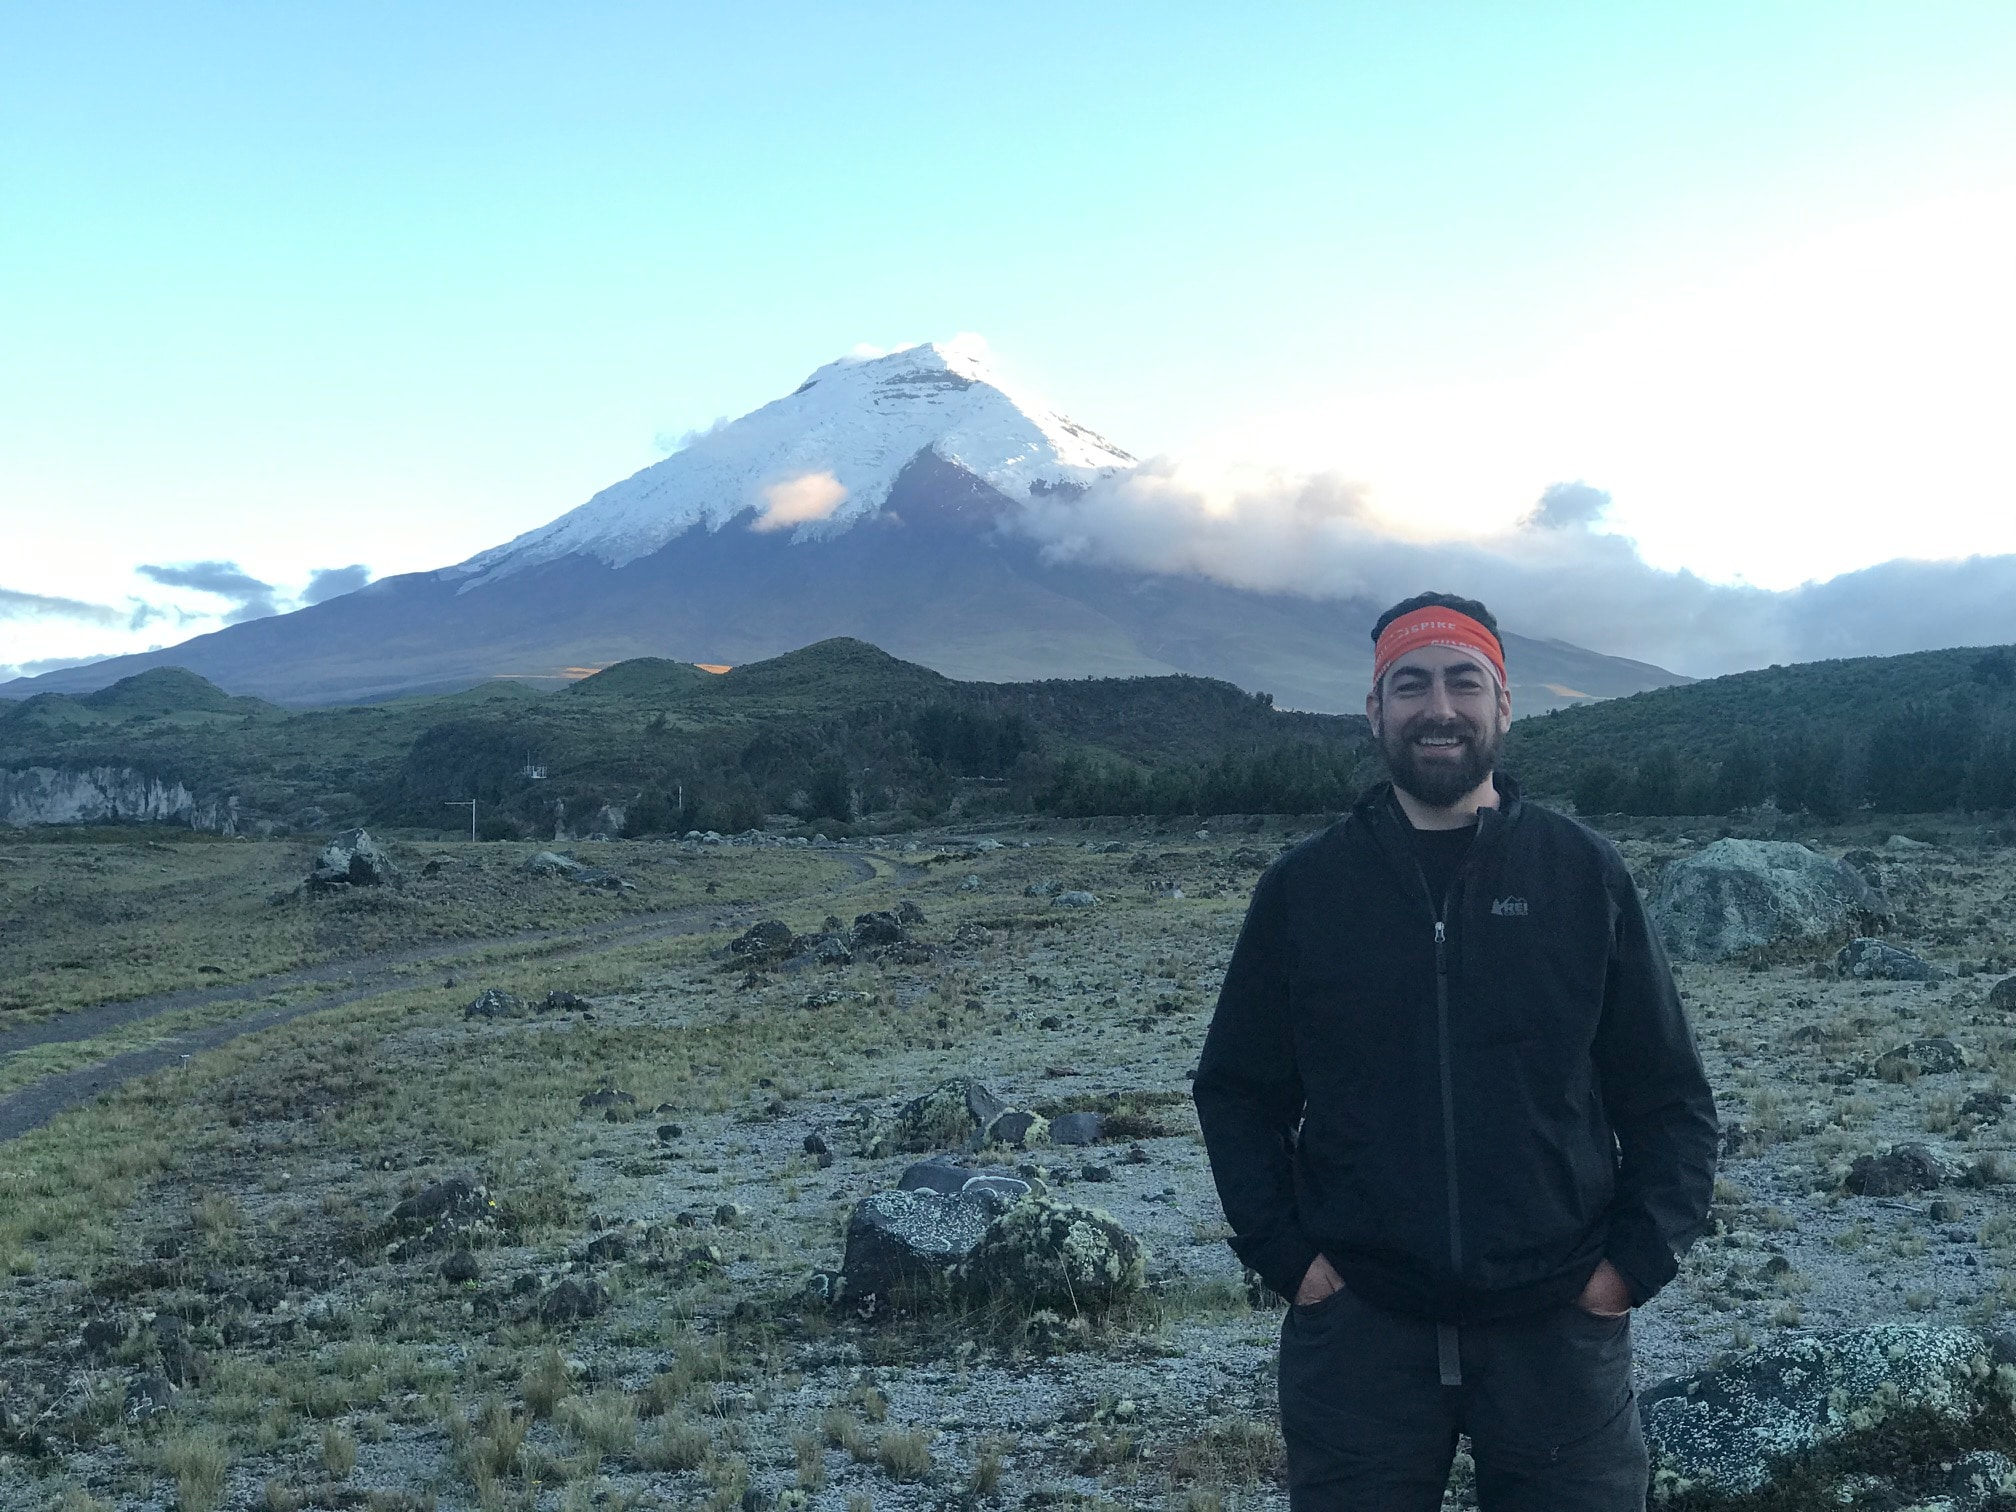 Nick Schumann poses for a photo in front of Cotopaxi